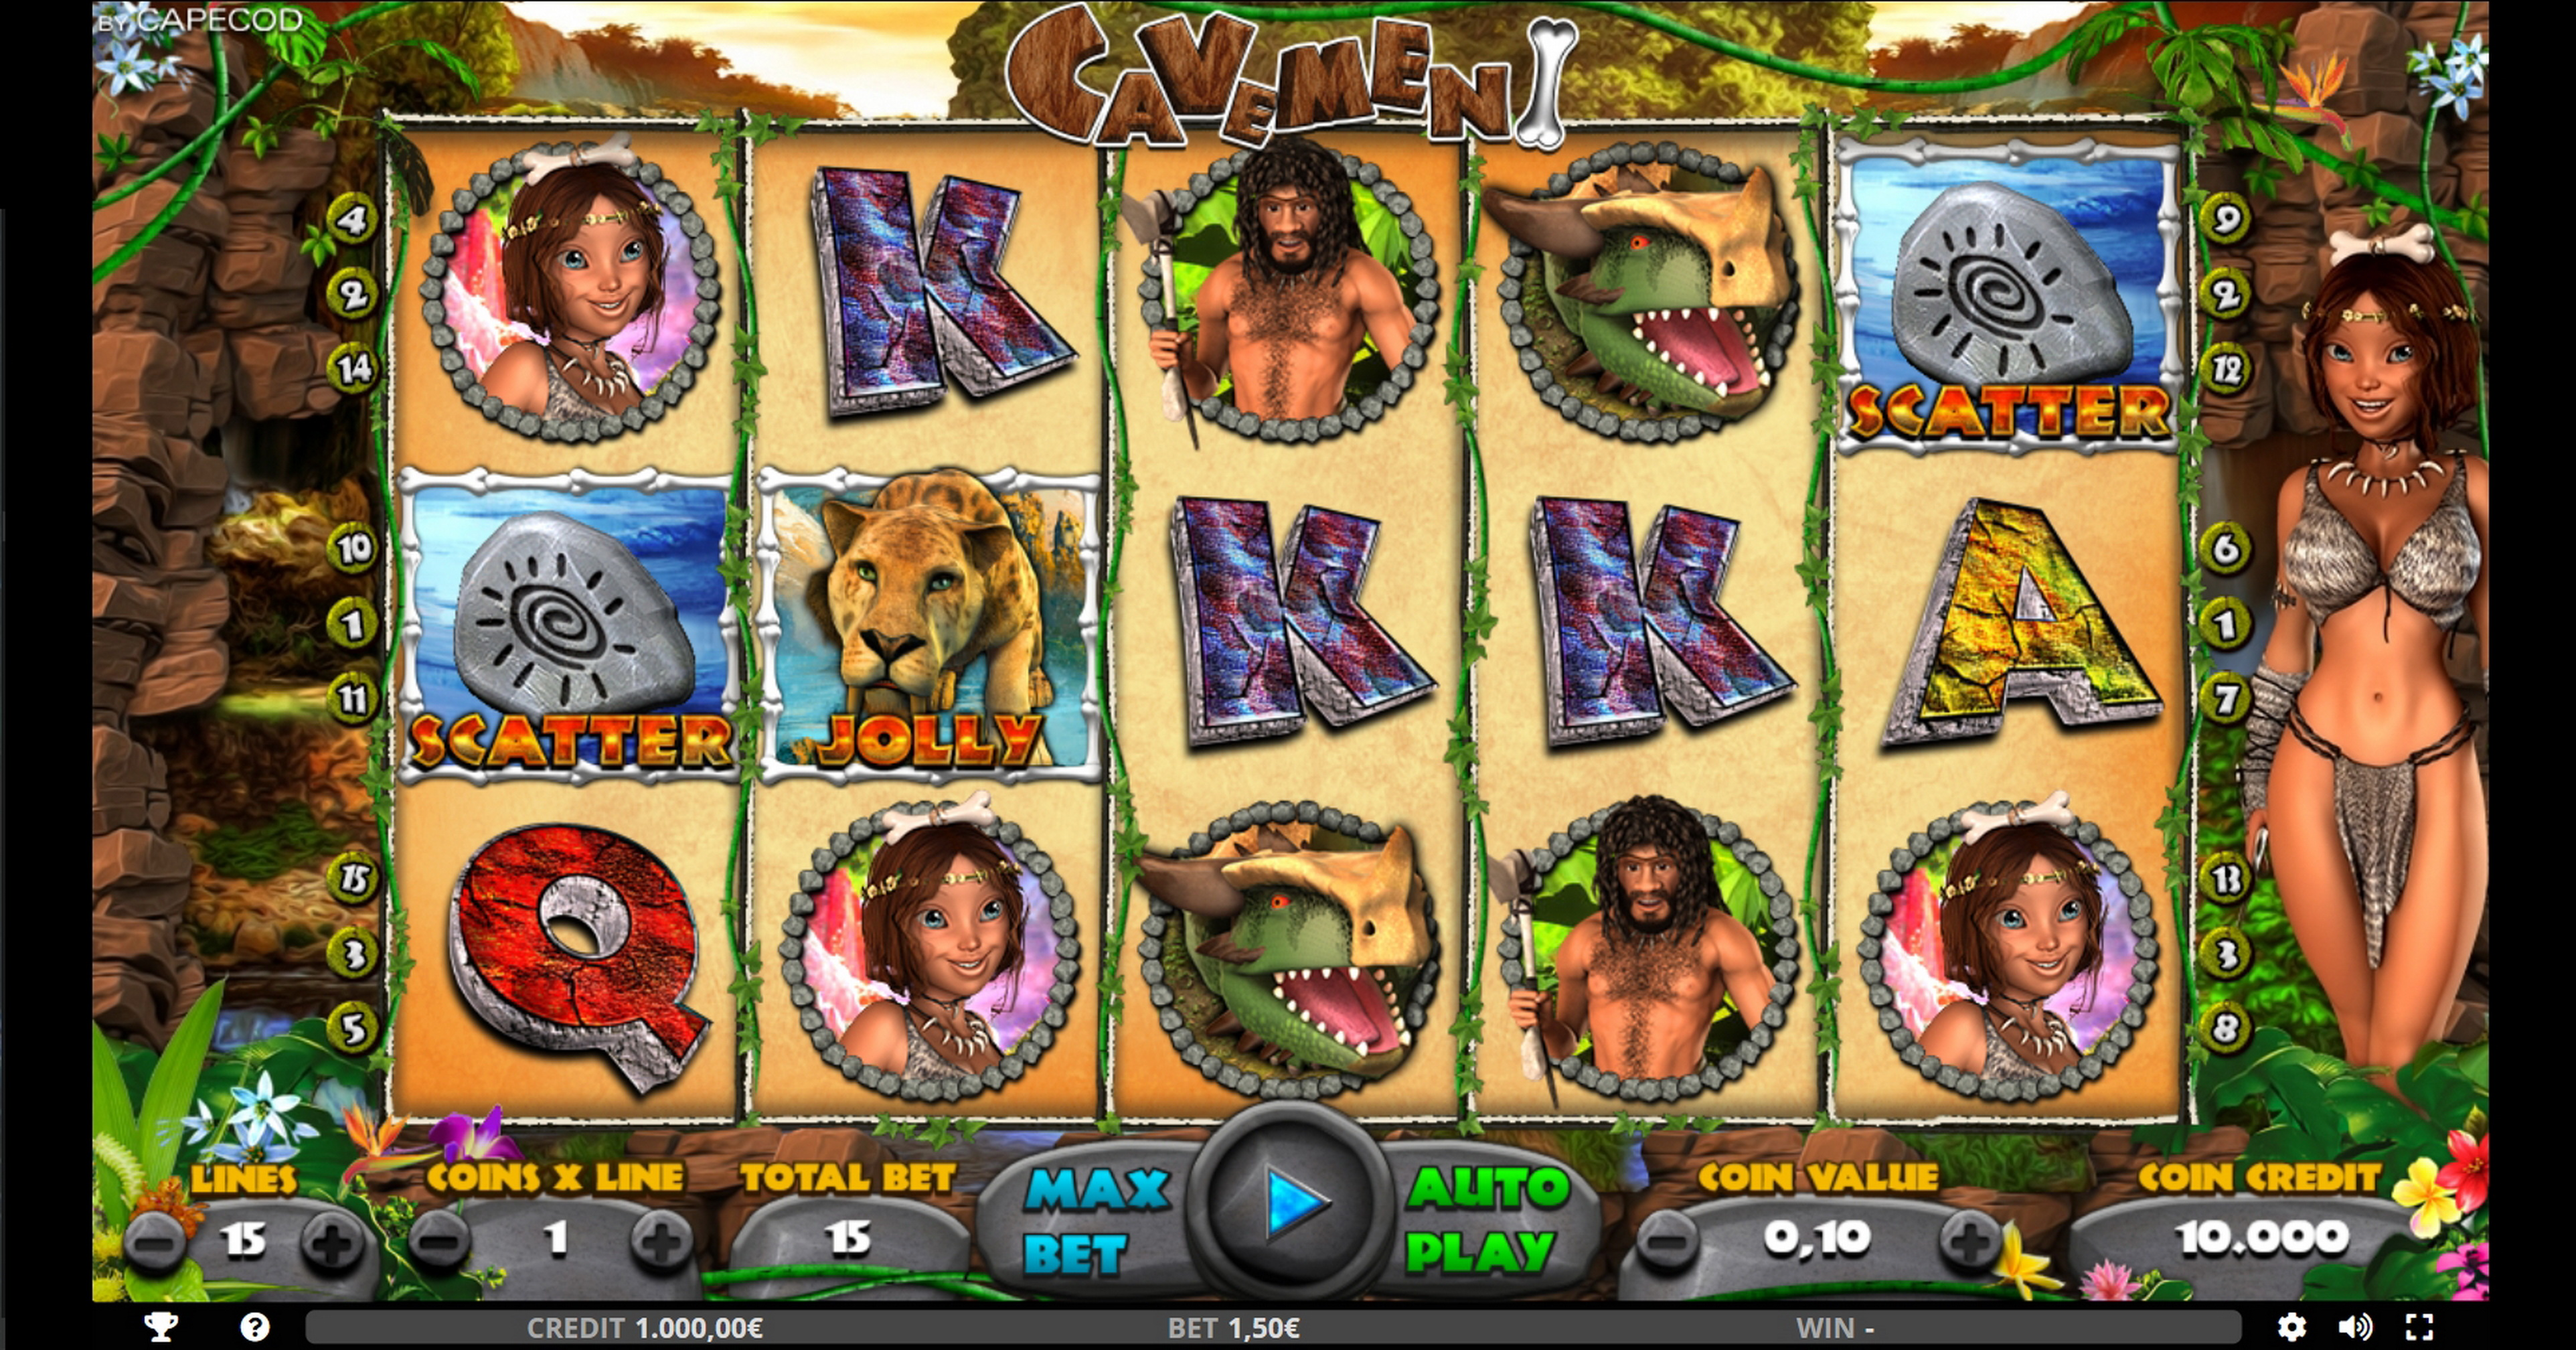 Reels in Cavemen Slot Game by Capecod Gaming